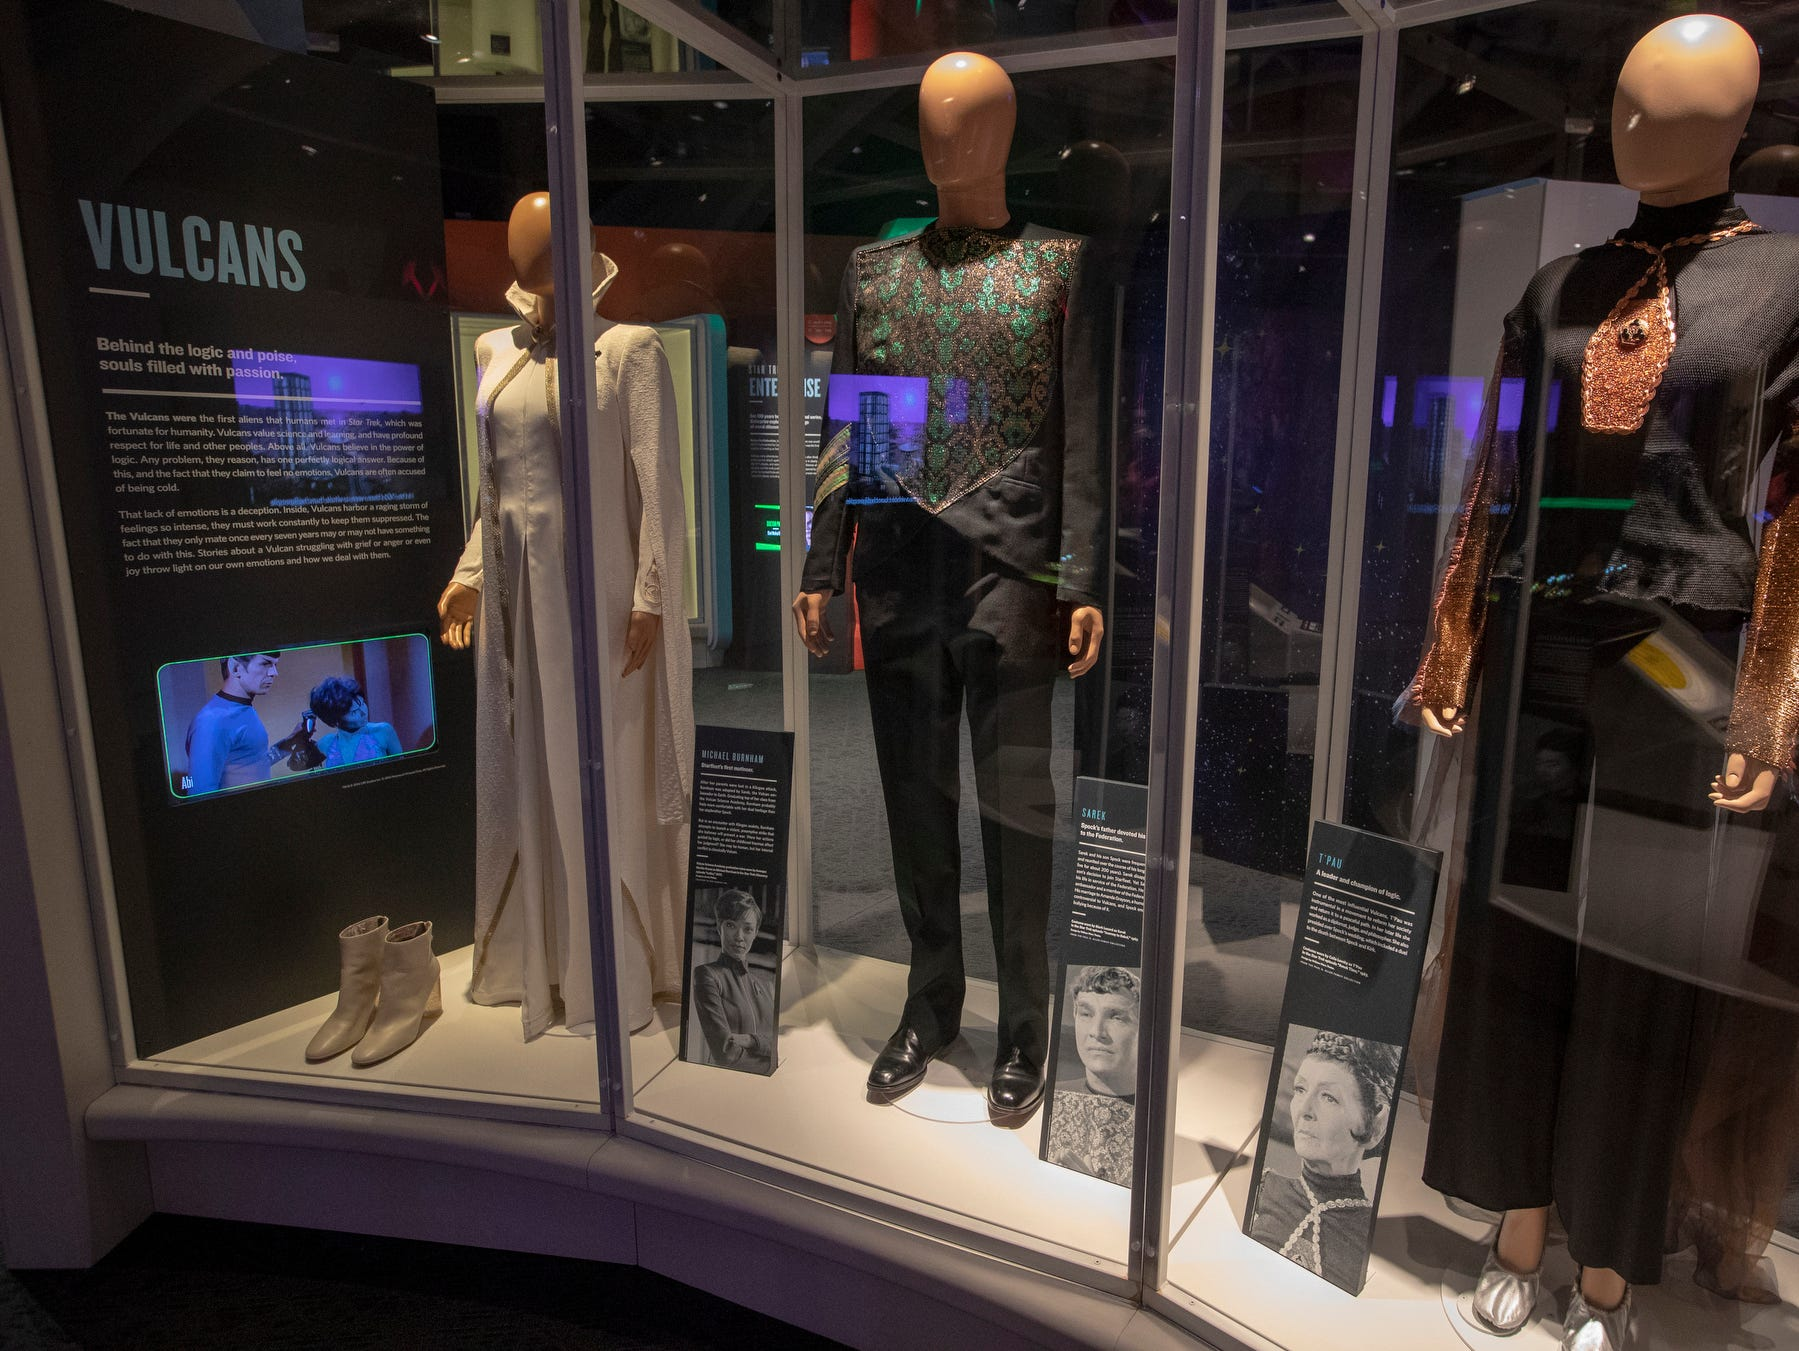 """Various outfits worn by Vulcan characters are seen at The Children's Museum of Indianapolis, Wednesday, Jan. 23, 2019. The """"Star Trek: Exploring New Worlds"""" exhibit is made up of set pieces, ship models and outfits used during various Star Trek shows and movies and is on display at the museum from Feb. 2 through April 7, 2019."""